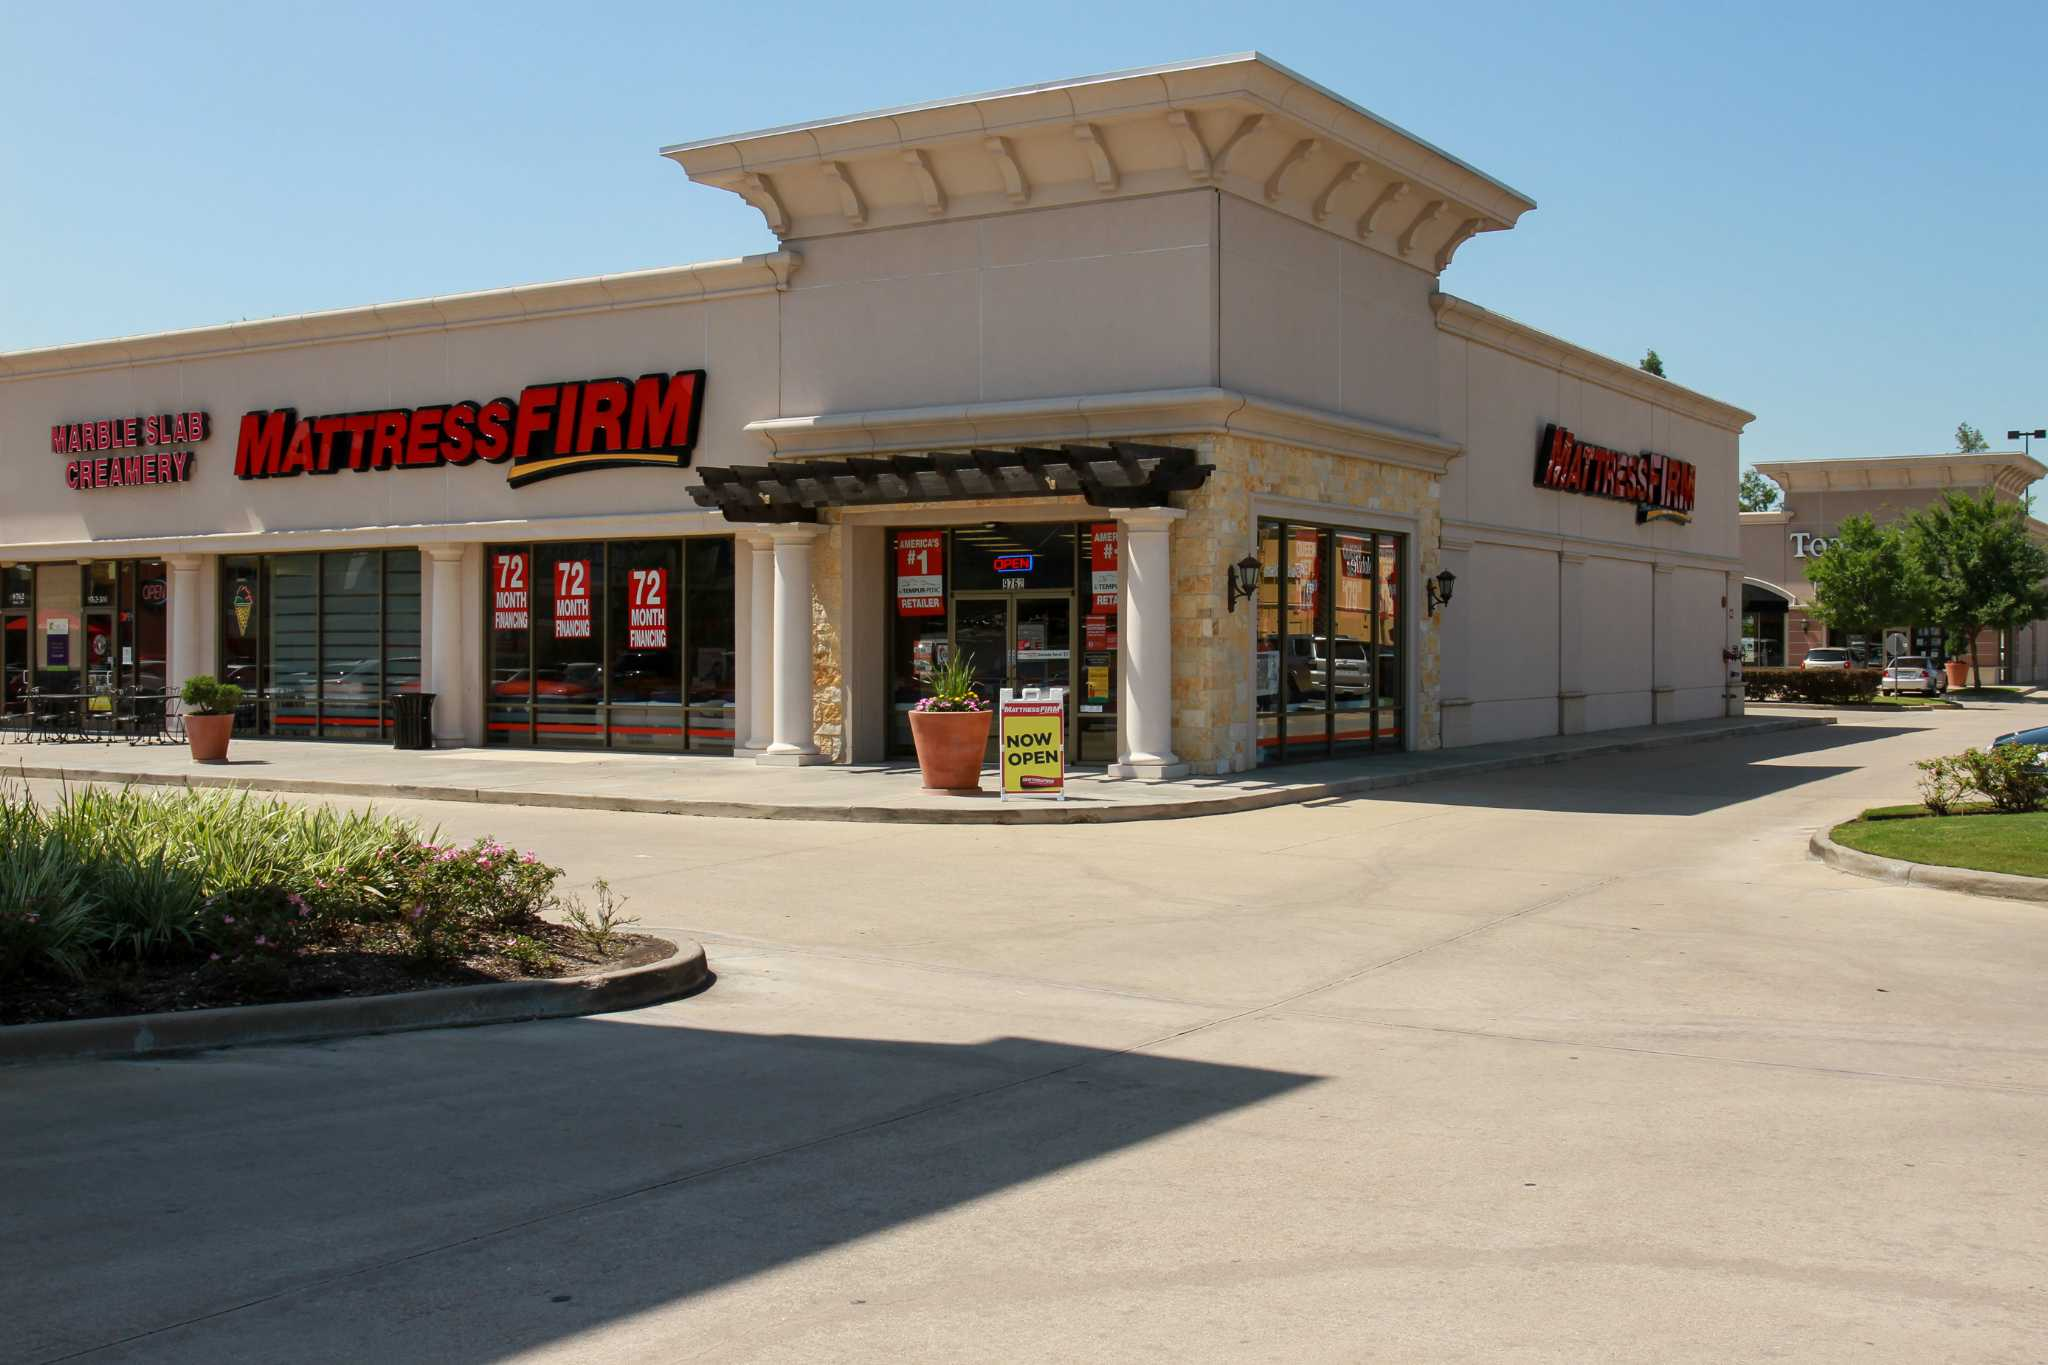 Mattress Firm's fate tied to parent company's woe